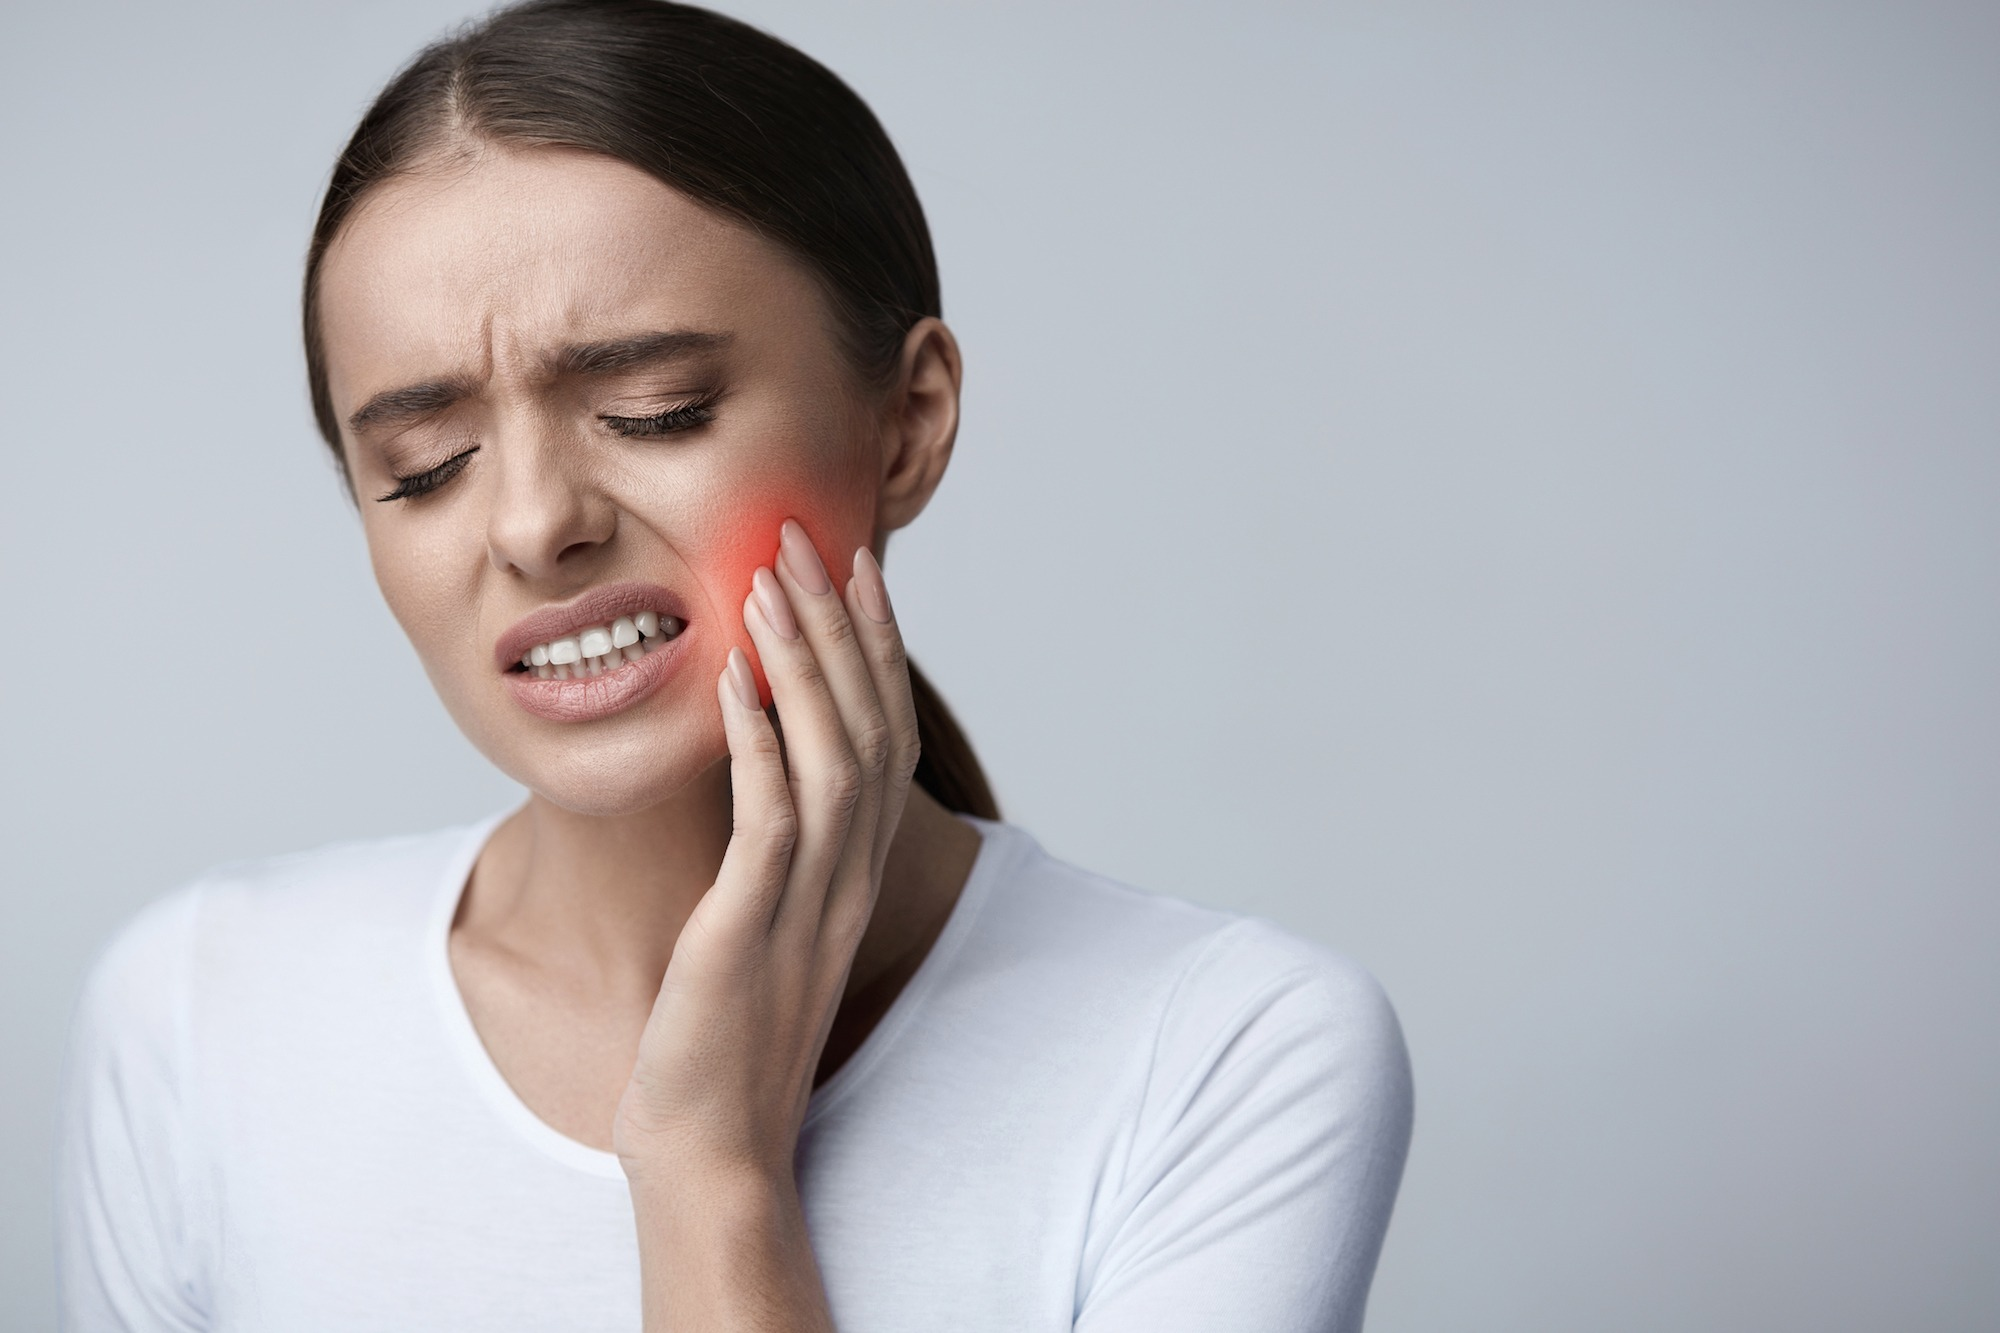 tooth-pain-causes